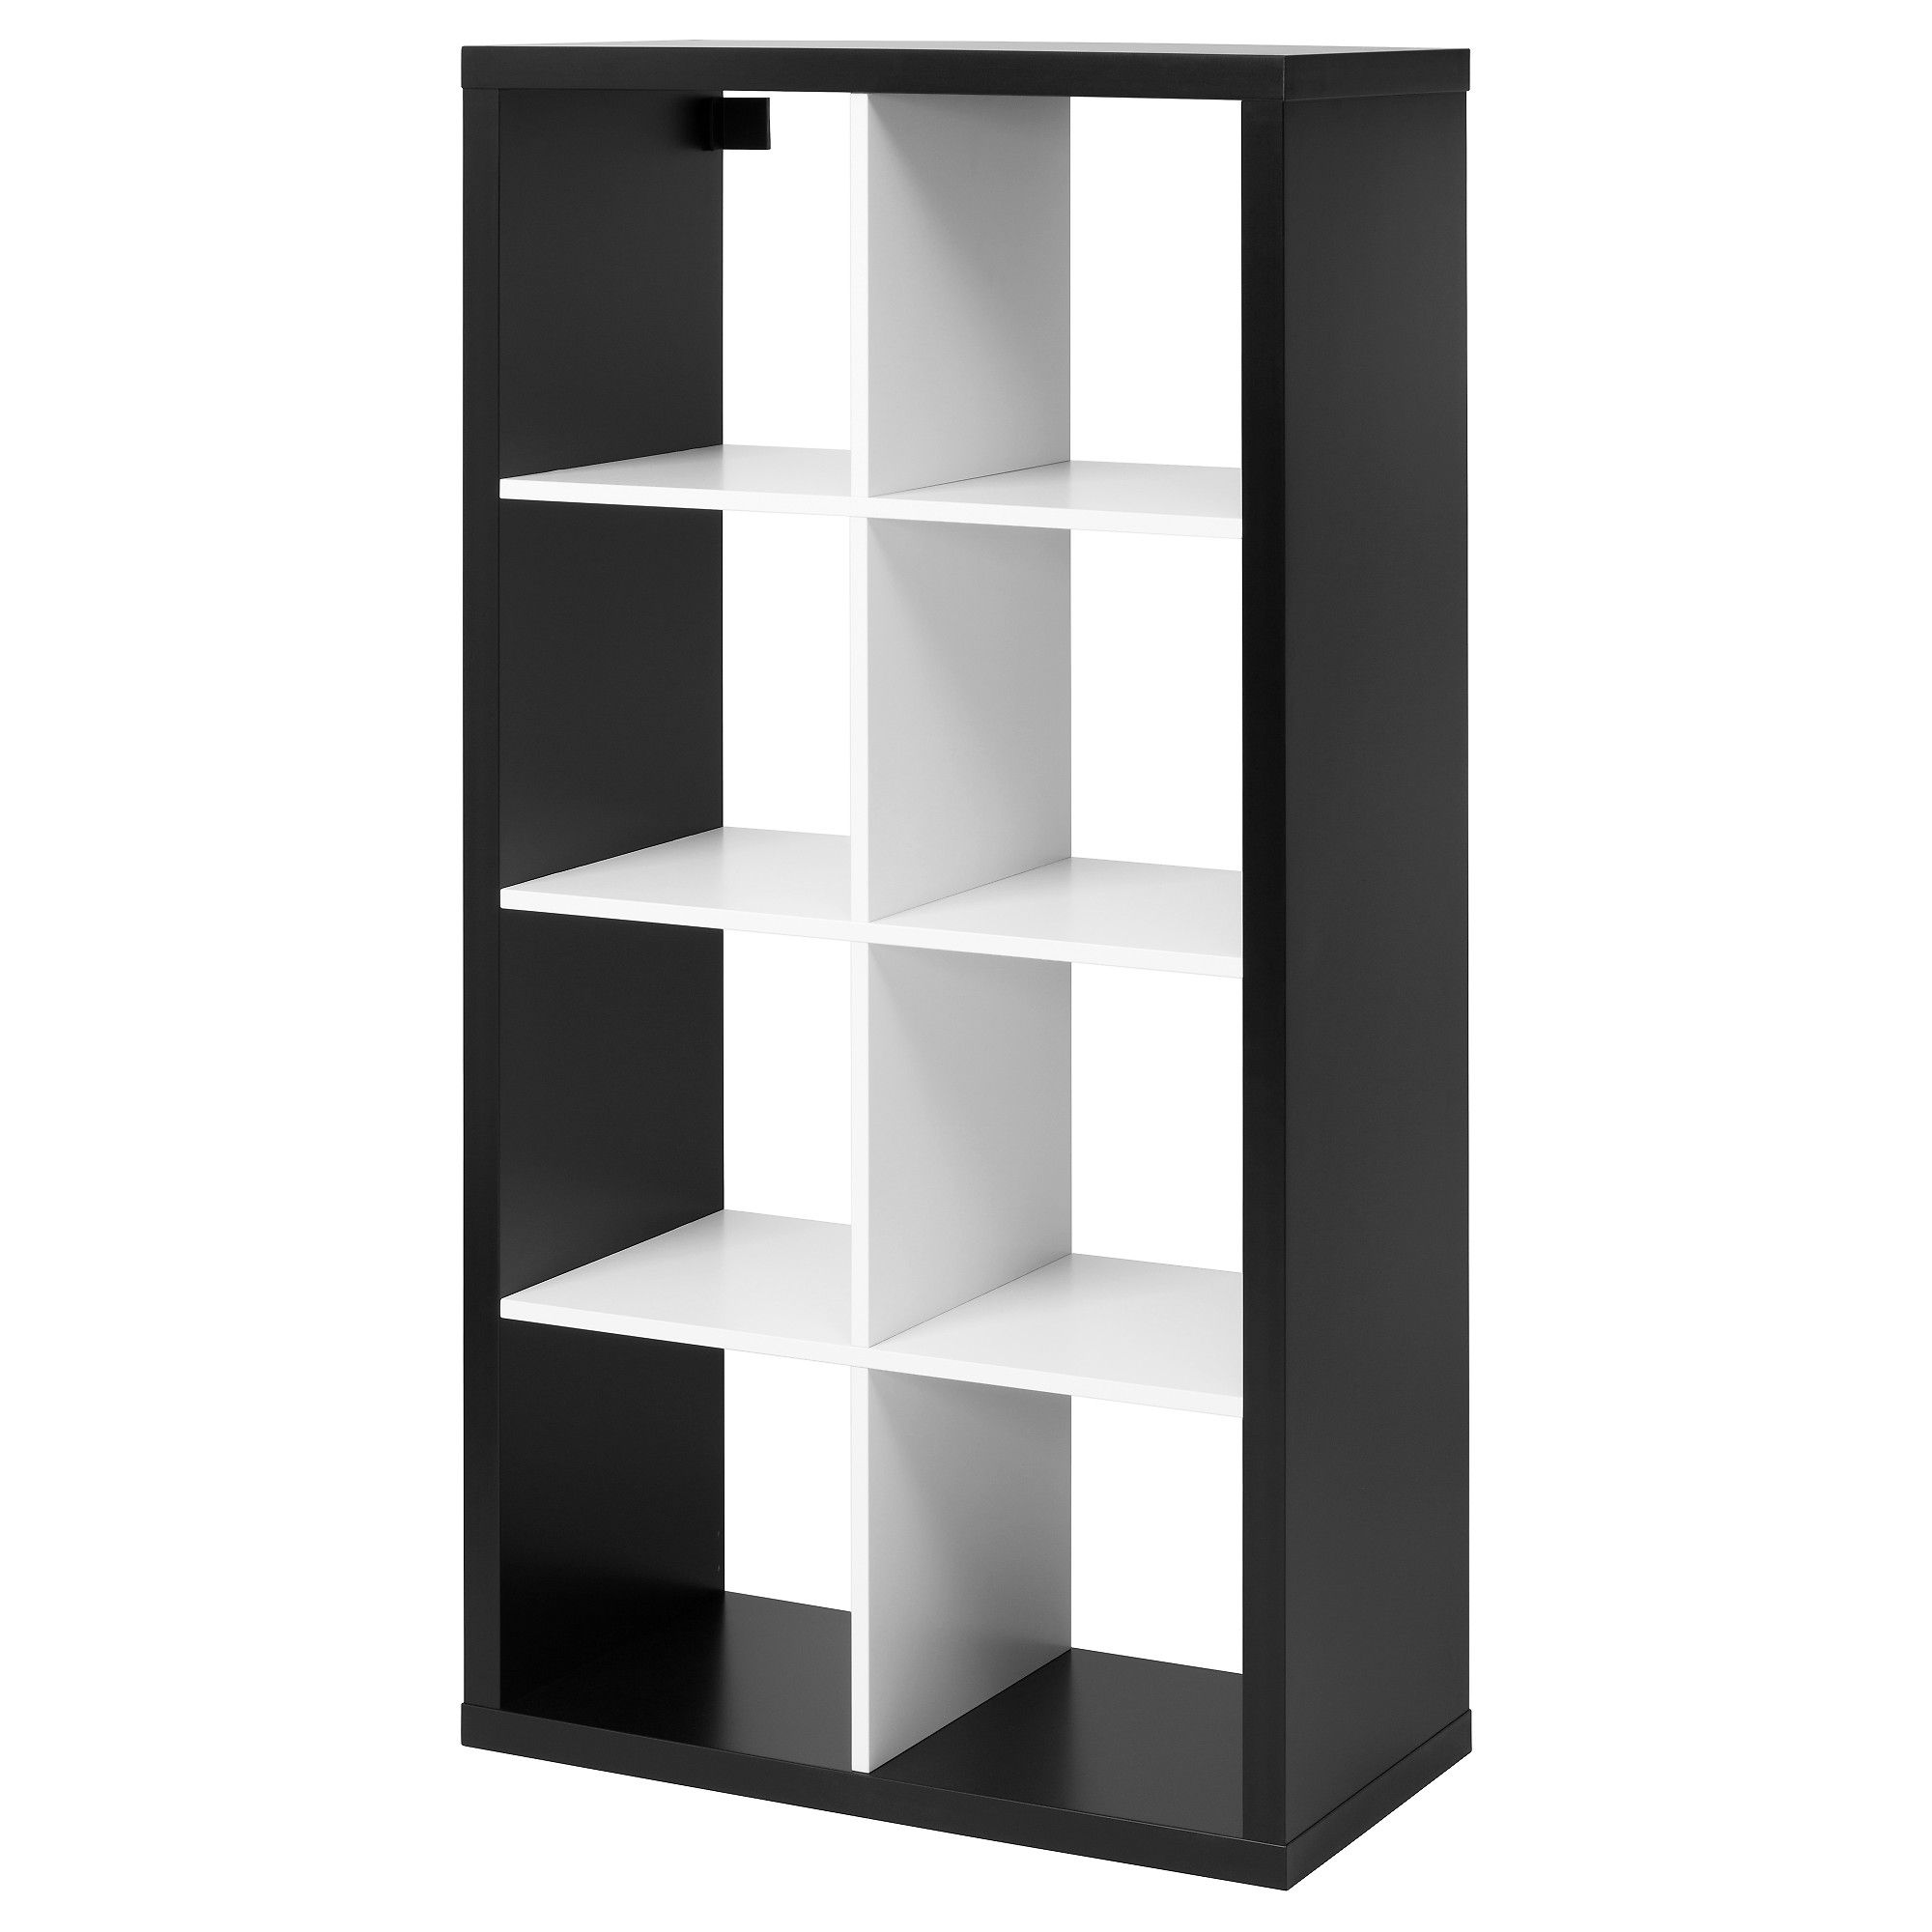 IKEA - KALLAX Shelf unit black, white in 2019 | Products ...